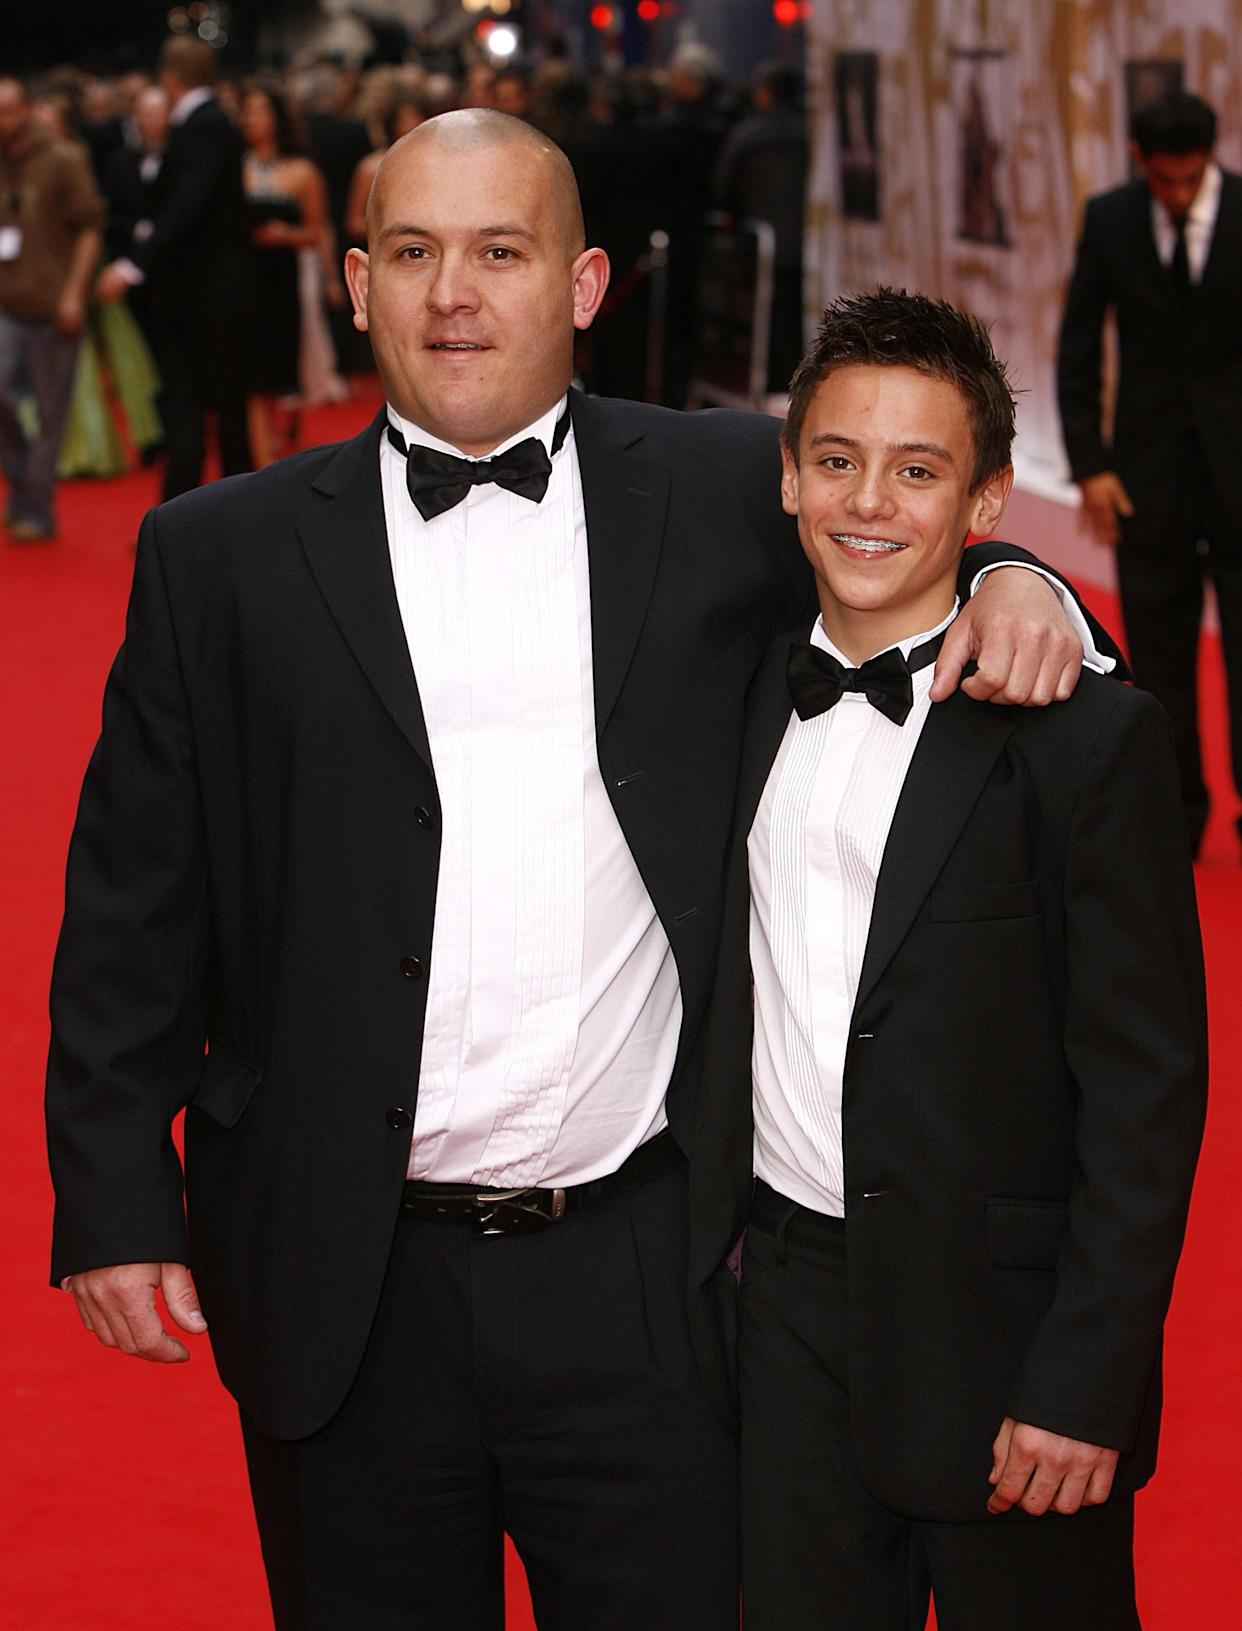 Thomas Daley and his dad Robert arrive for the British Academy Television Awards at the London Palladium, W1.